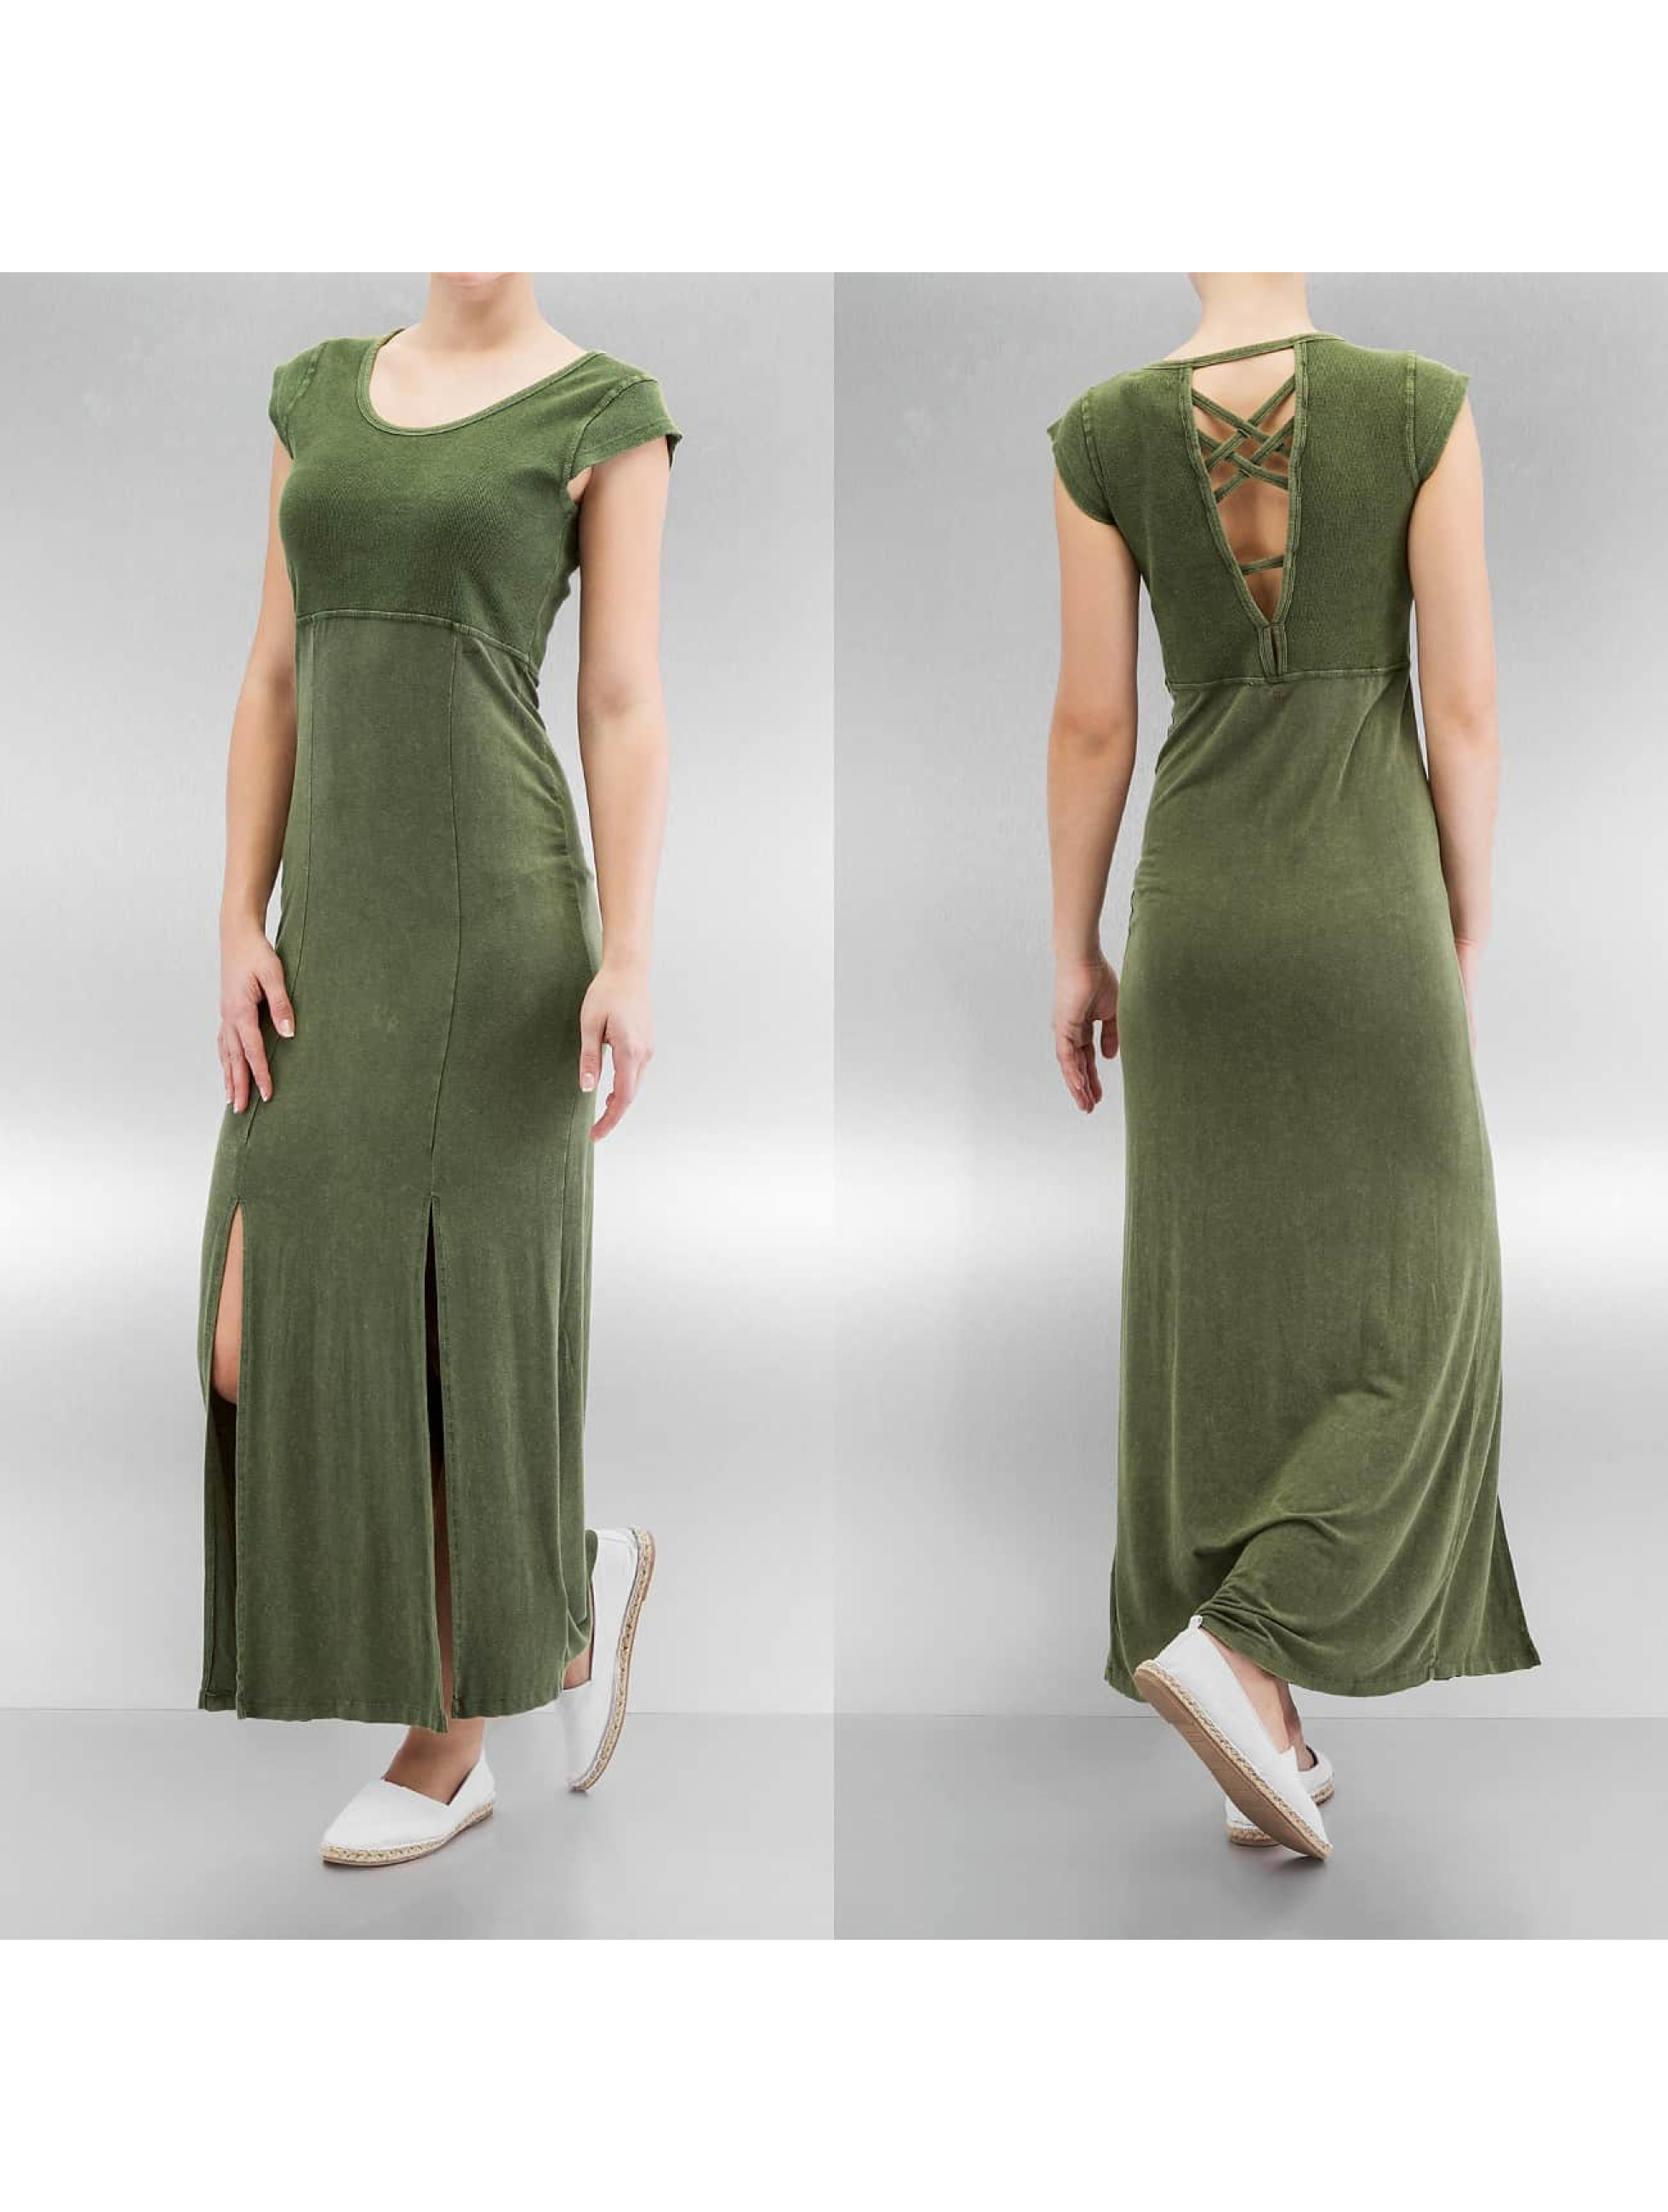 Khujo Zaibu Dress Olive Sale Angebote Hosena